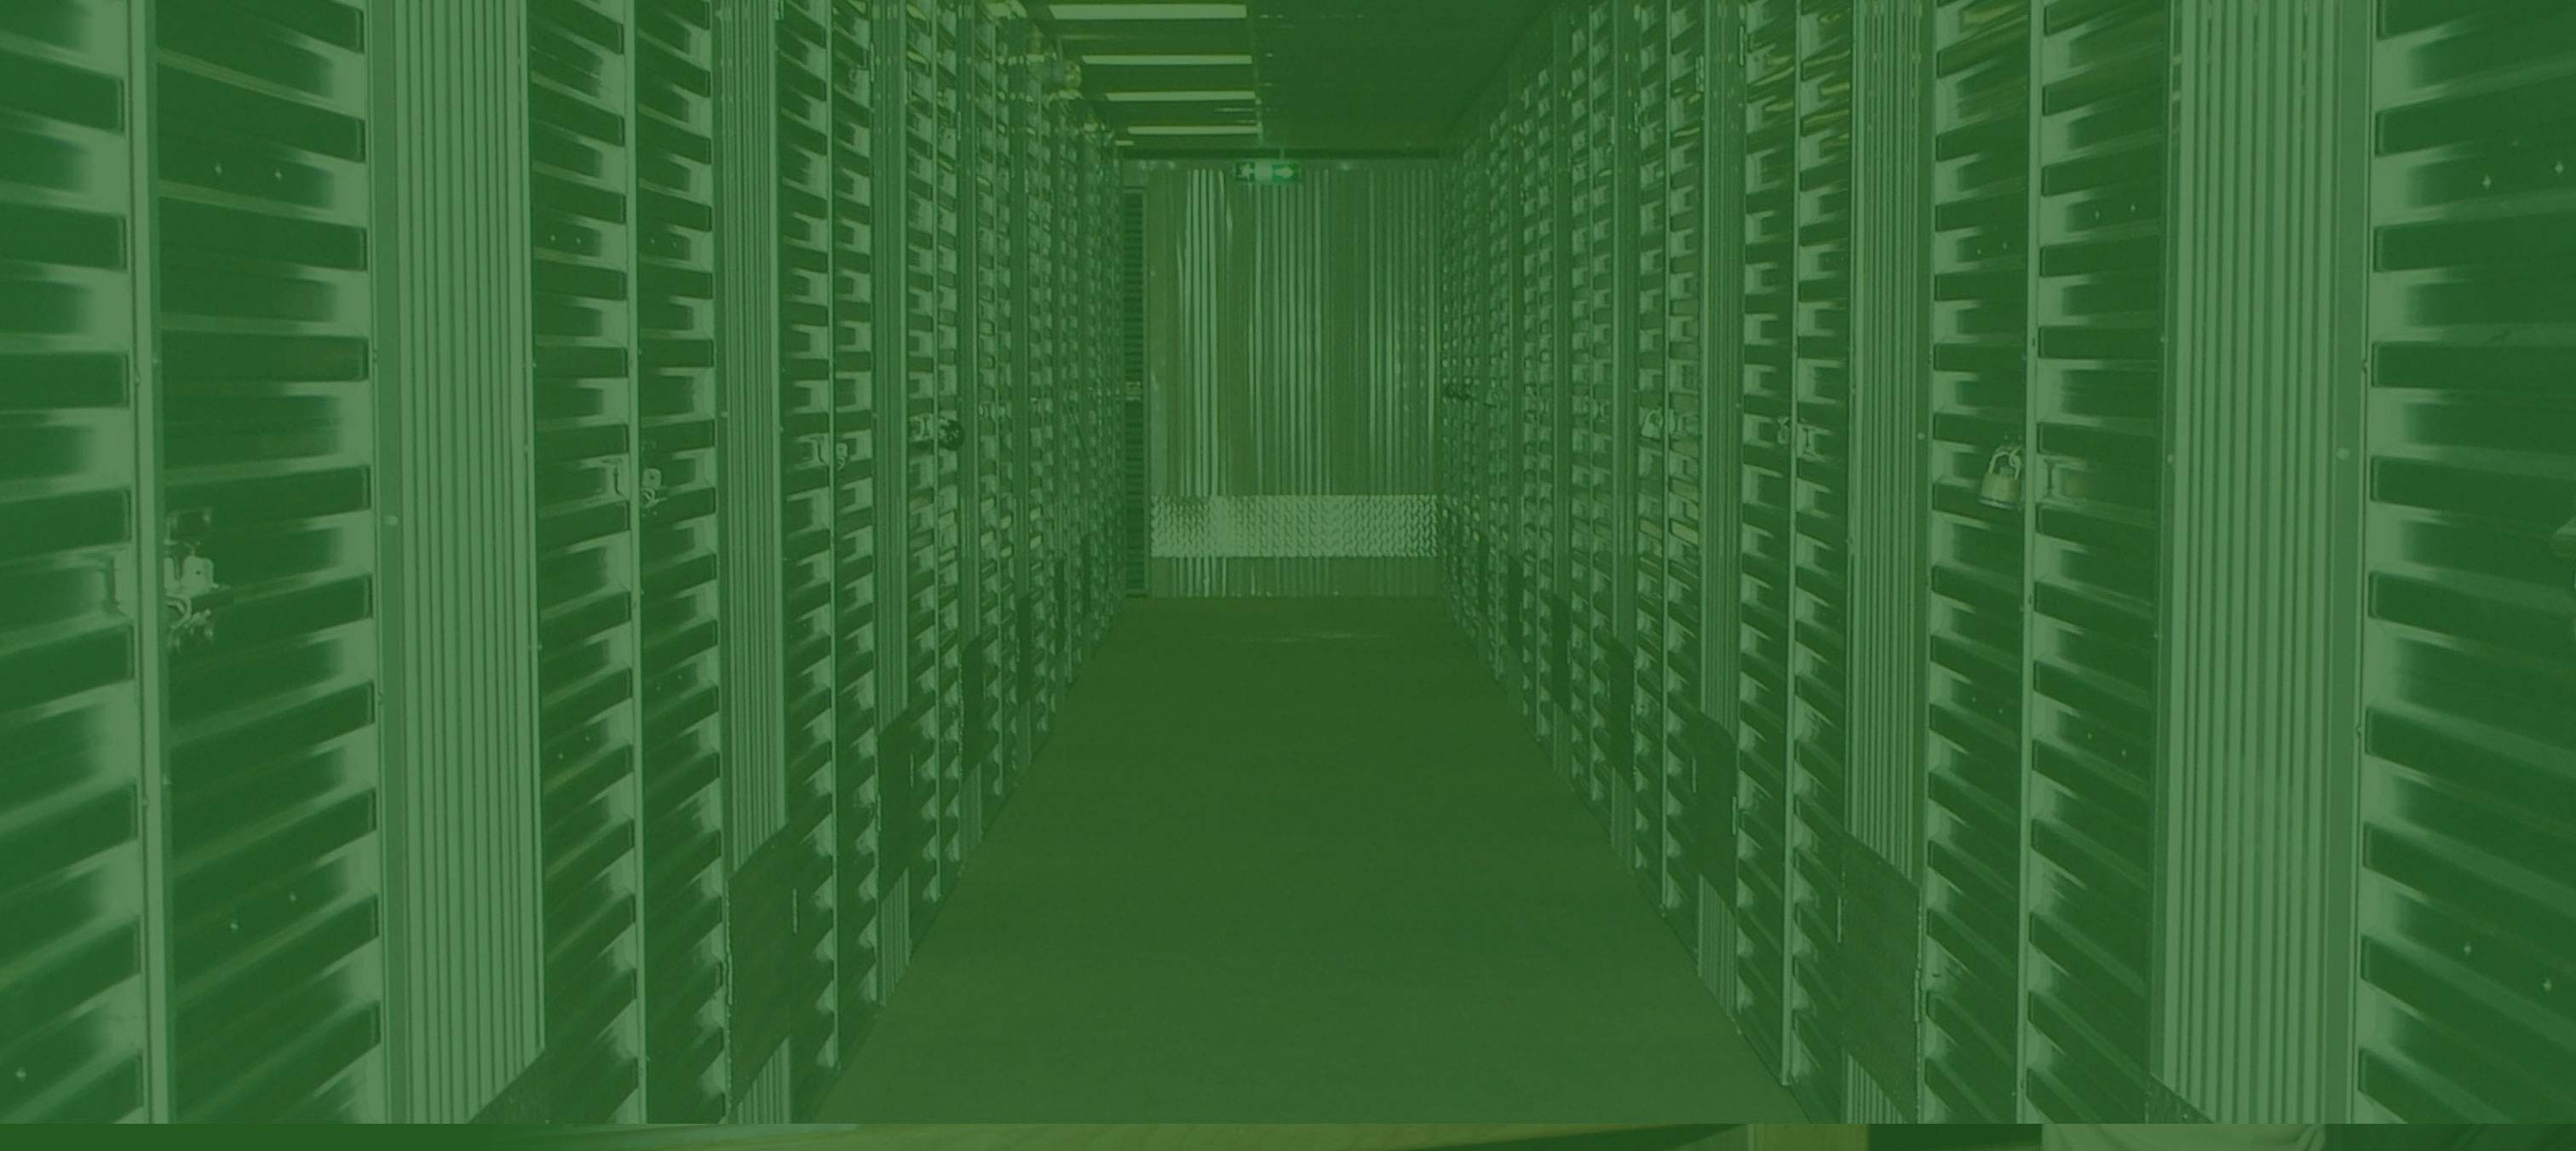 Image Of Storage Units